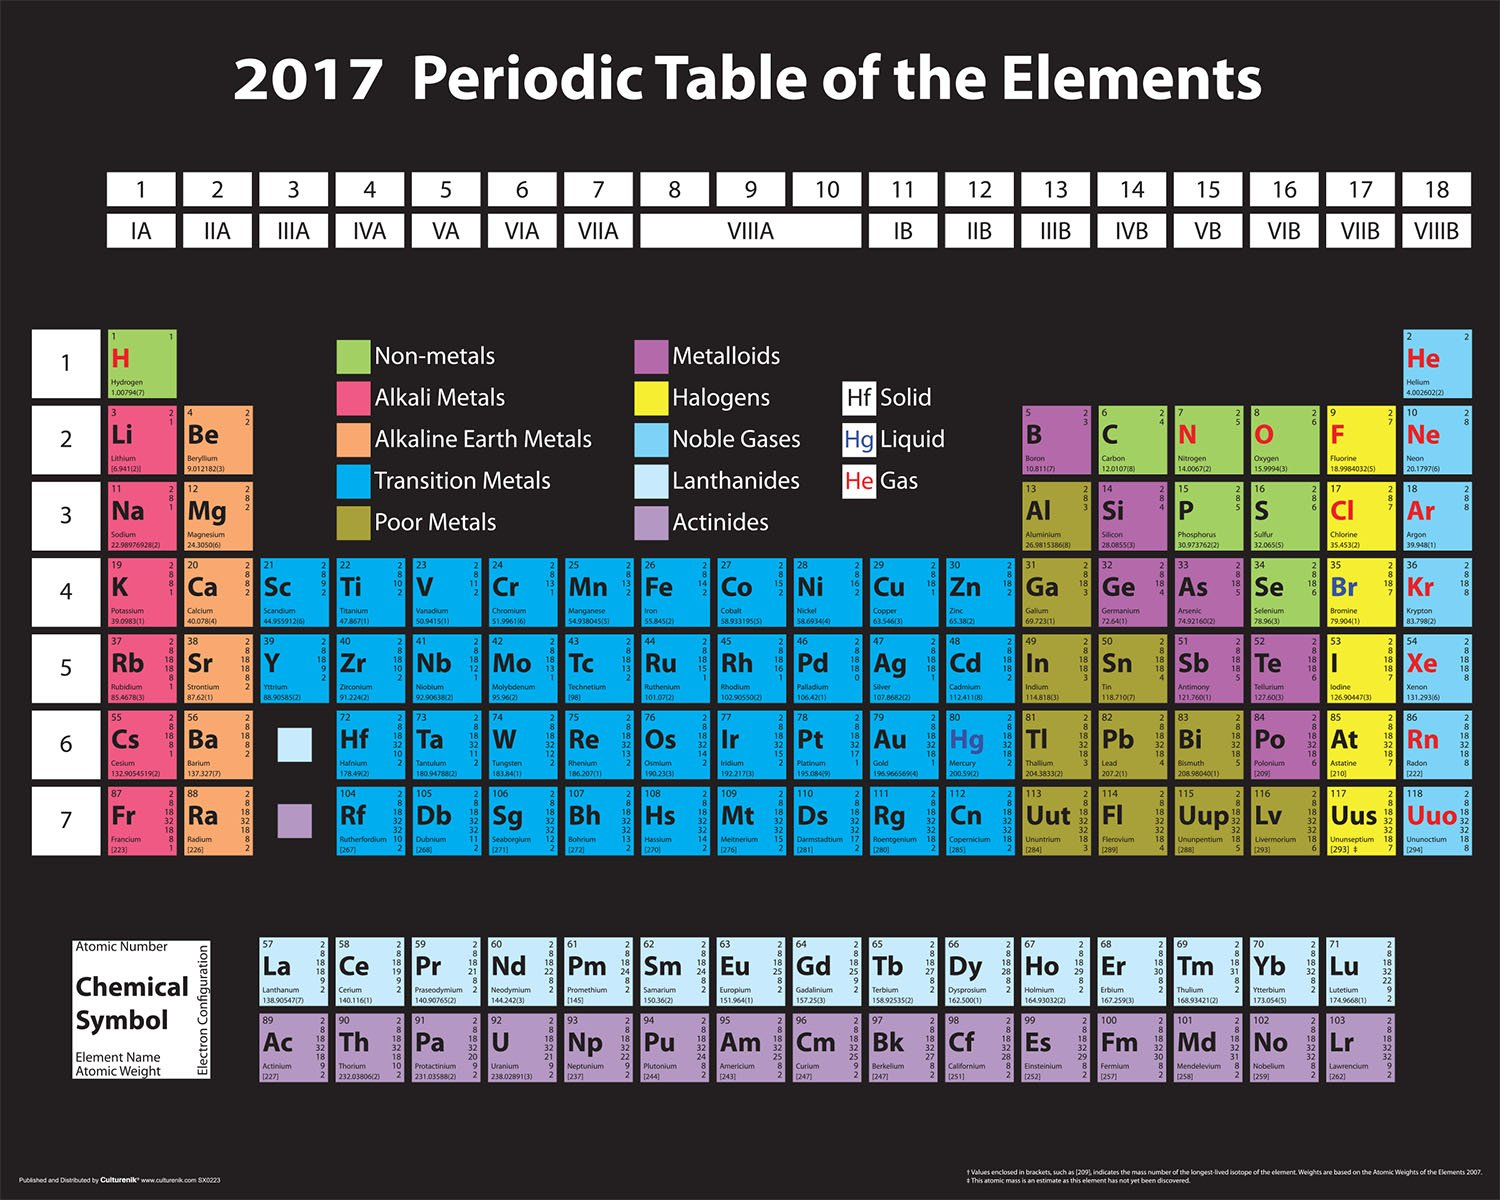 Periodic table of elements 2017 decor educational science room size16x20 unframed this poster includes the periodic table of elements urtaz Image collections